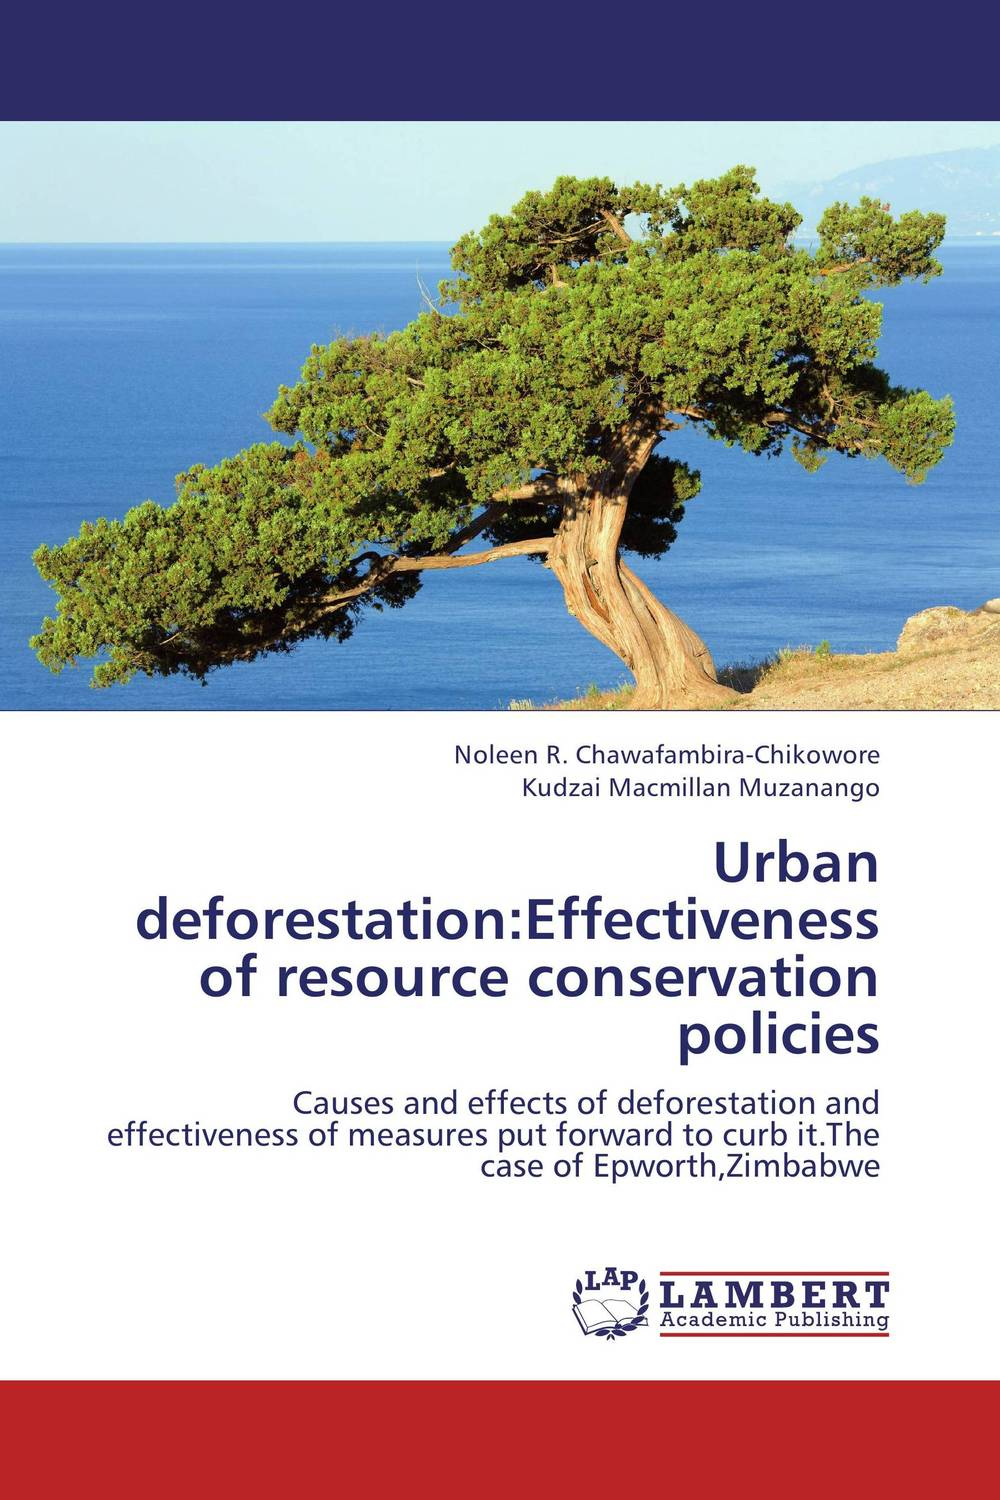 Urban deforestation:Effectiveness of resource conservation policies the prevalence causes and effects of in law conflicts in zimbabwe